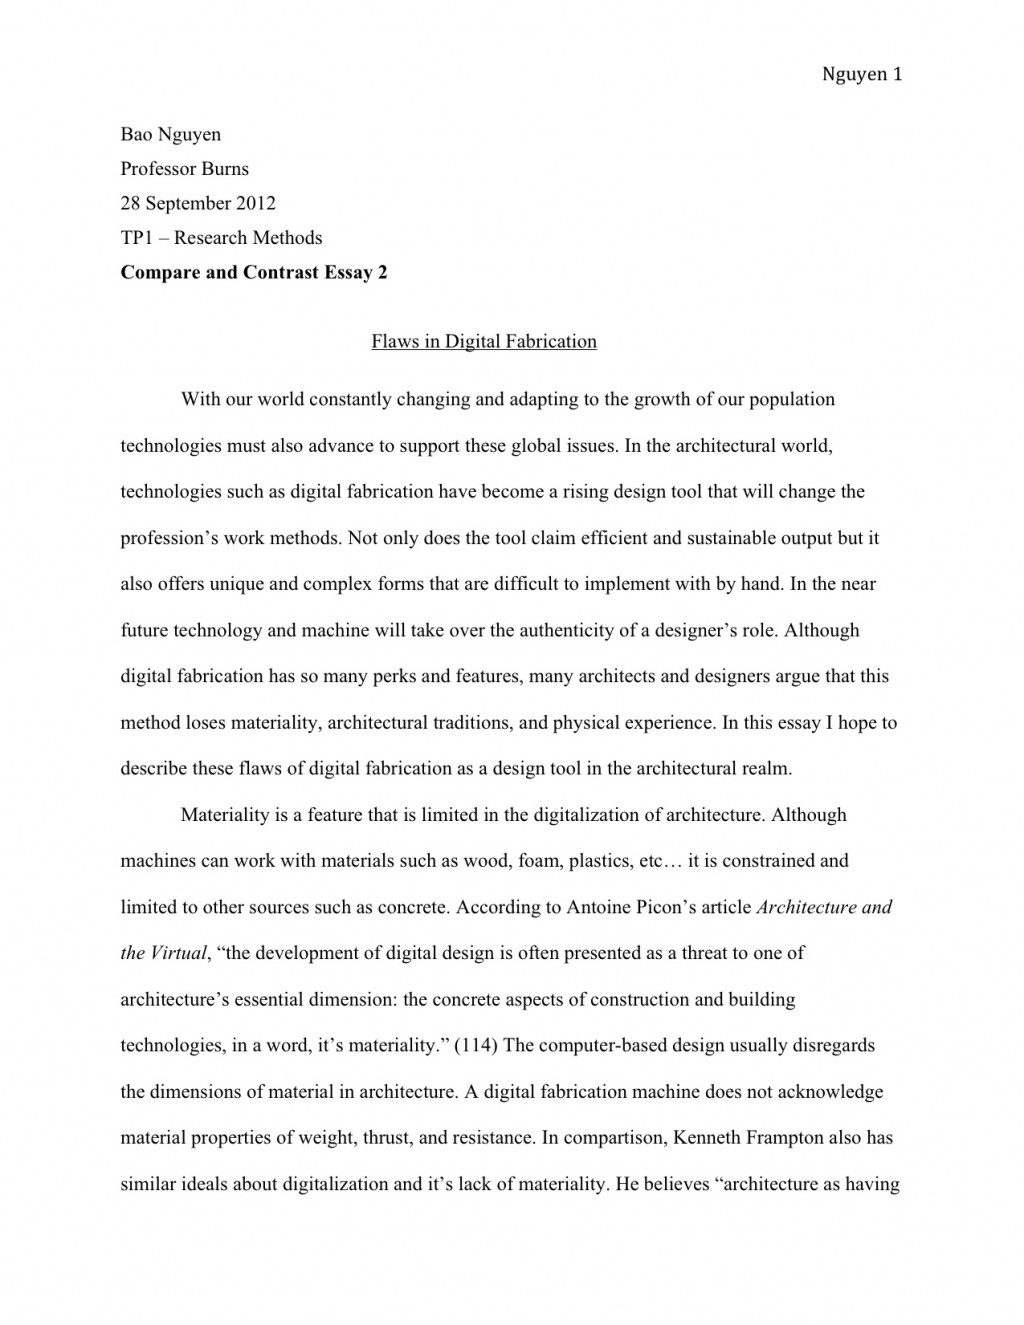 007 Essay Example Good Hooks For Essays Tp1 3 Unforgettable About Gun Control Examples Of Expository Persuasive Large